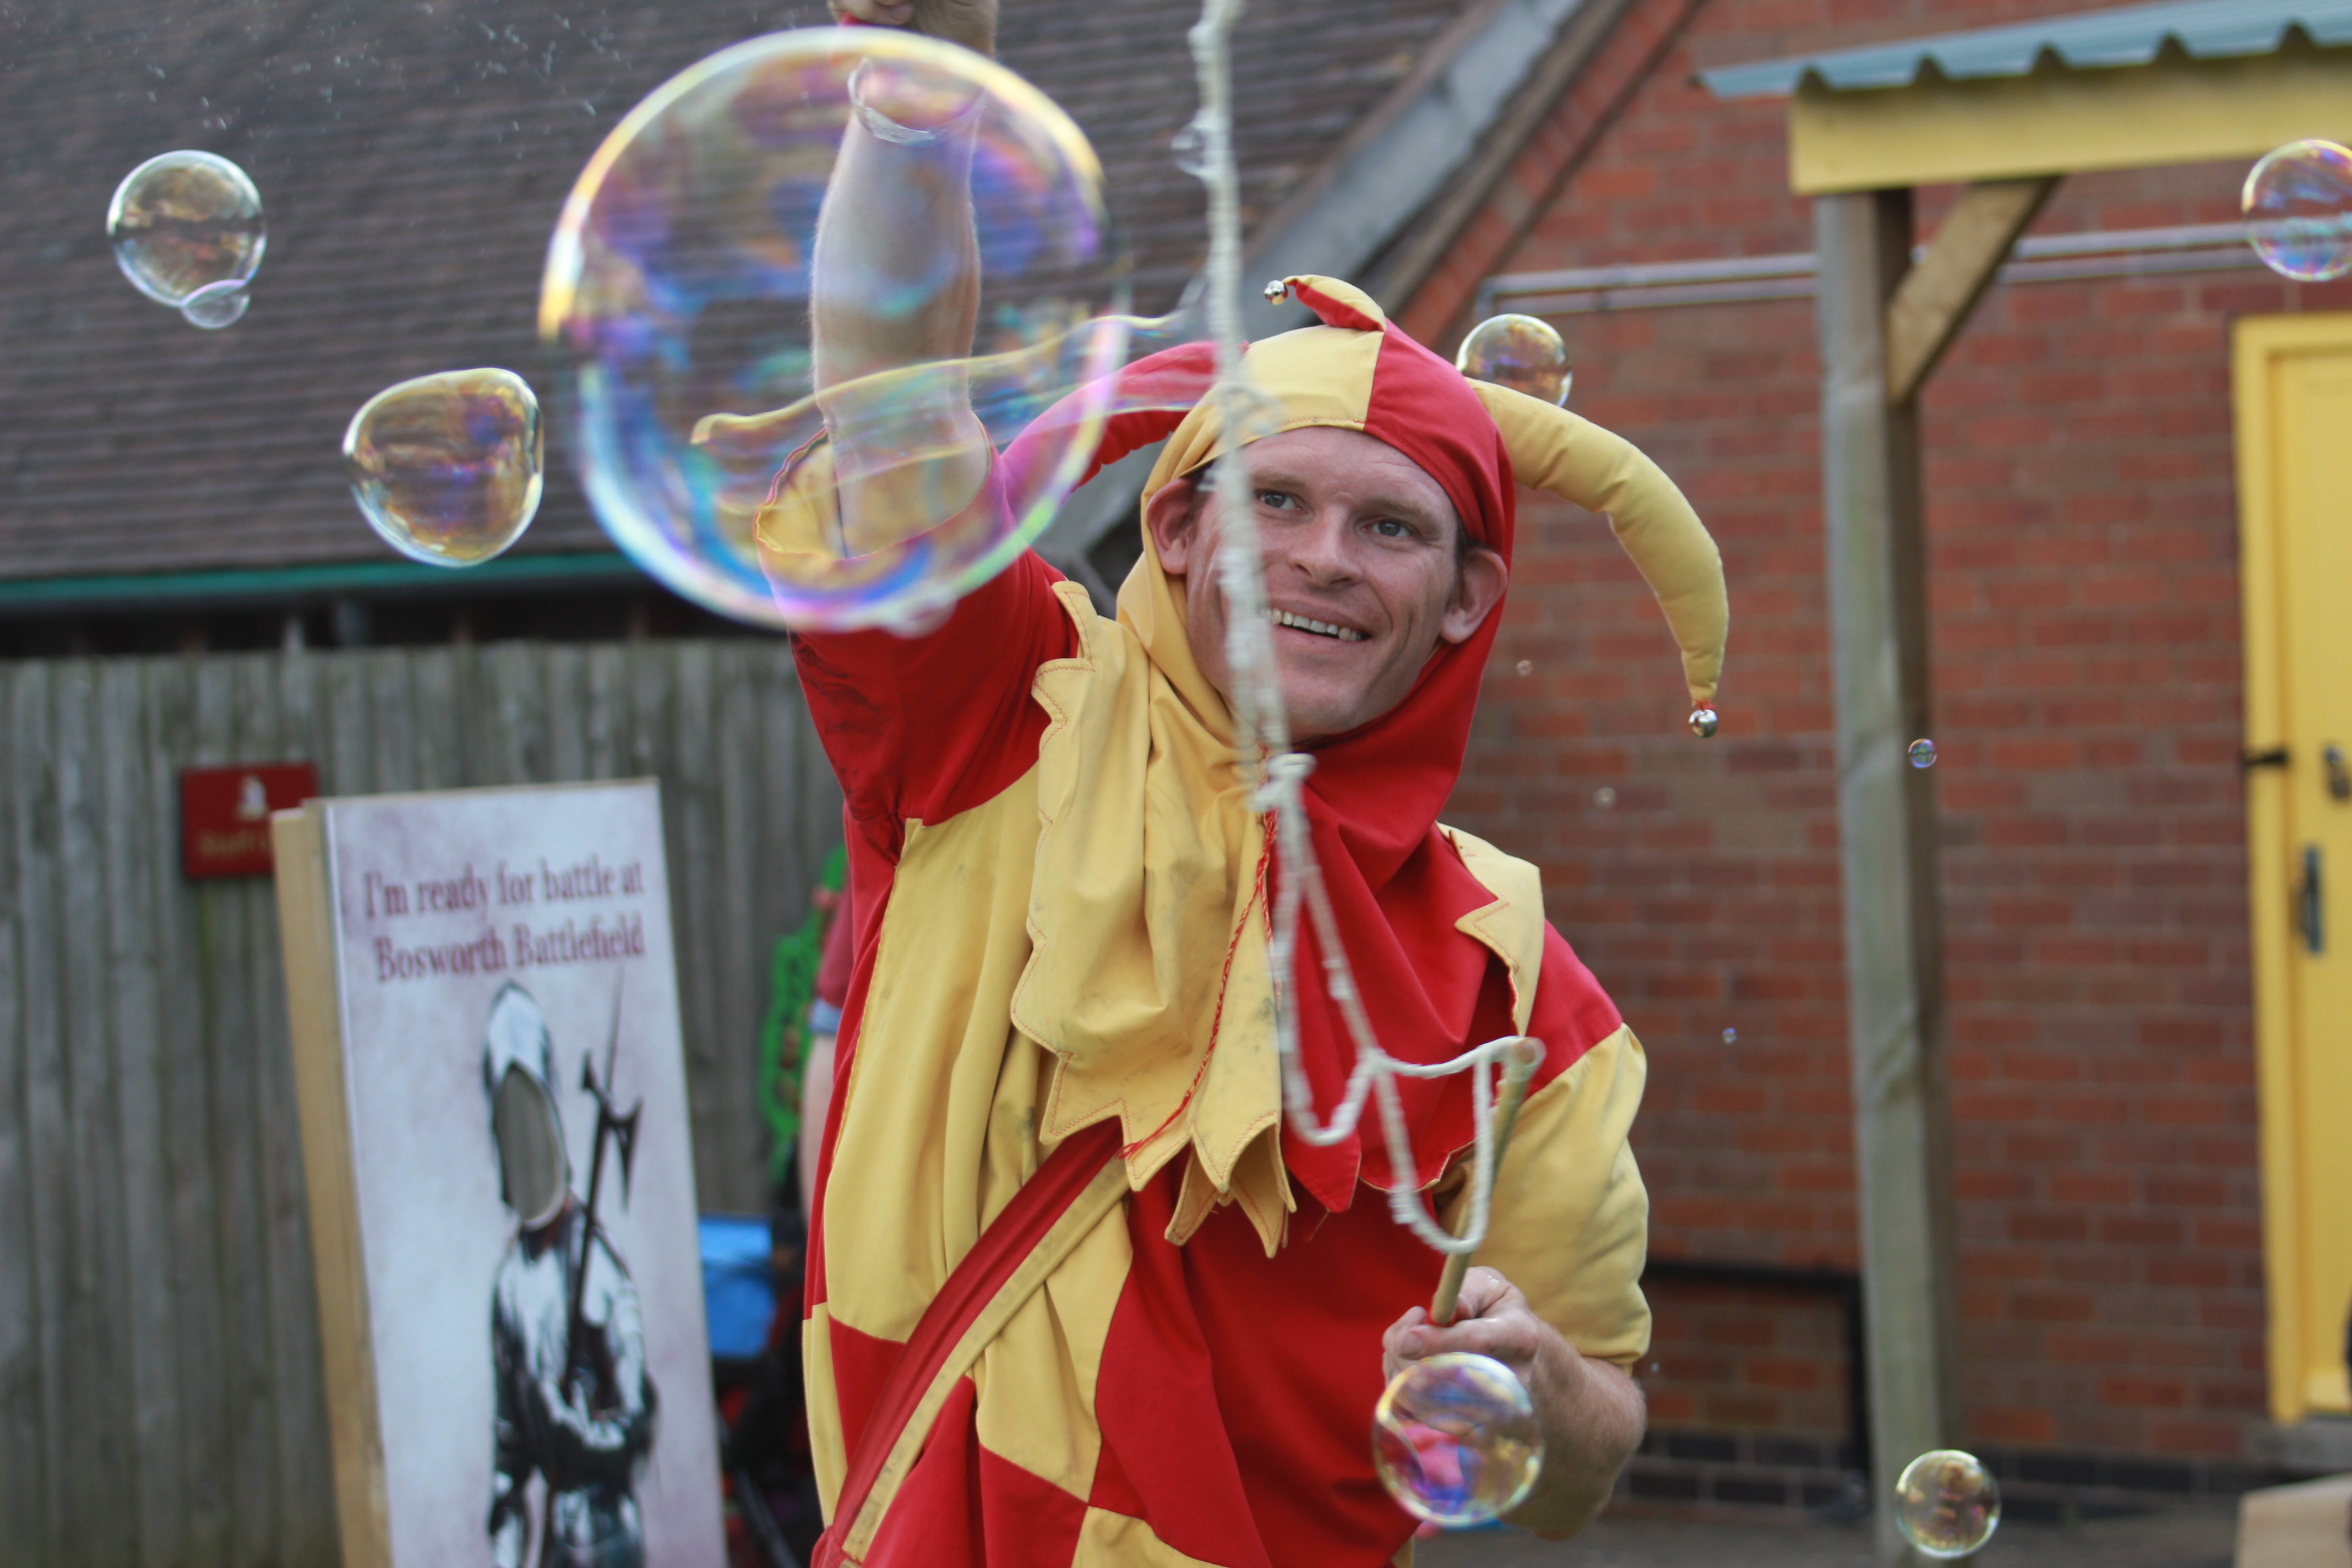 Jester at Bosworth